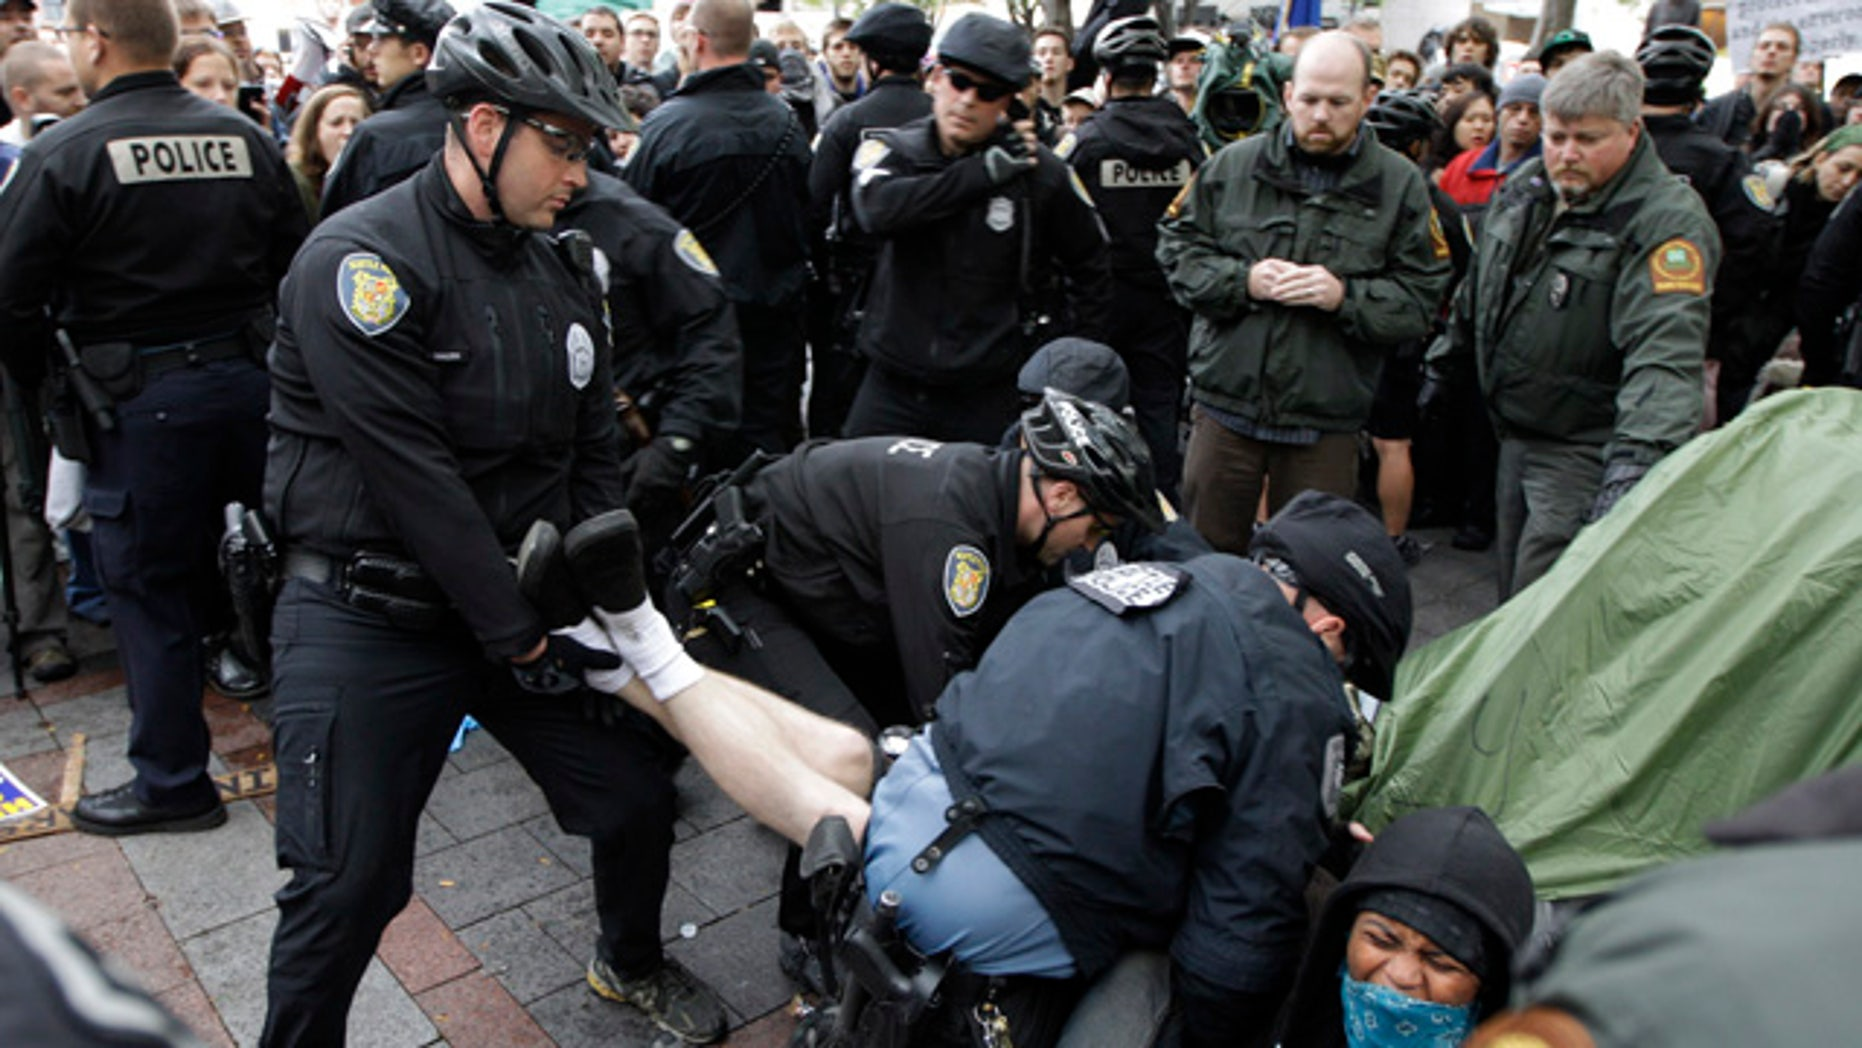 """Oct. 5: Police arrest a man who refused to leave a tent pitched at an """"Occupy Seattle"""" protest encampment in downtown Seattle's Westlake Park."""